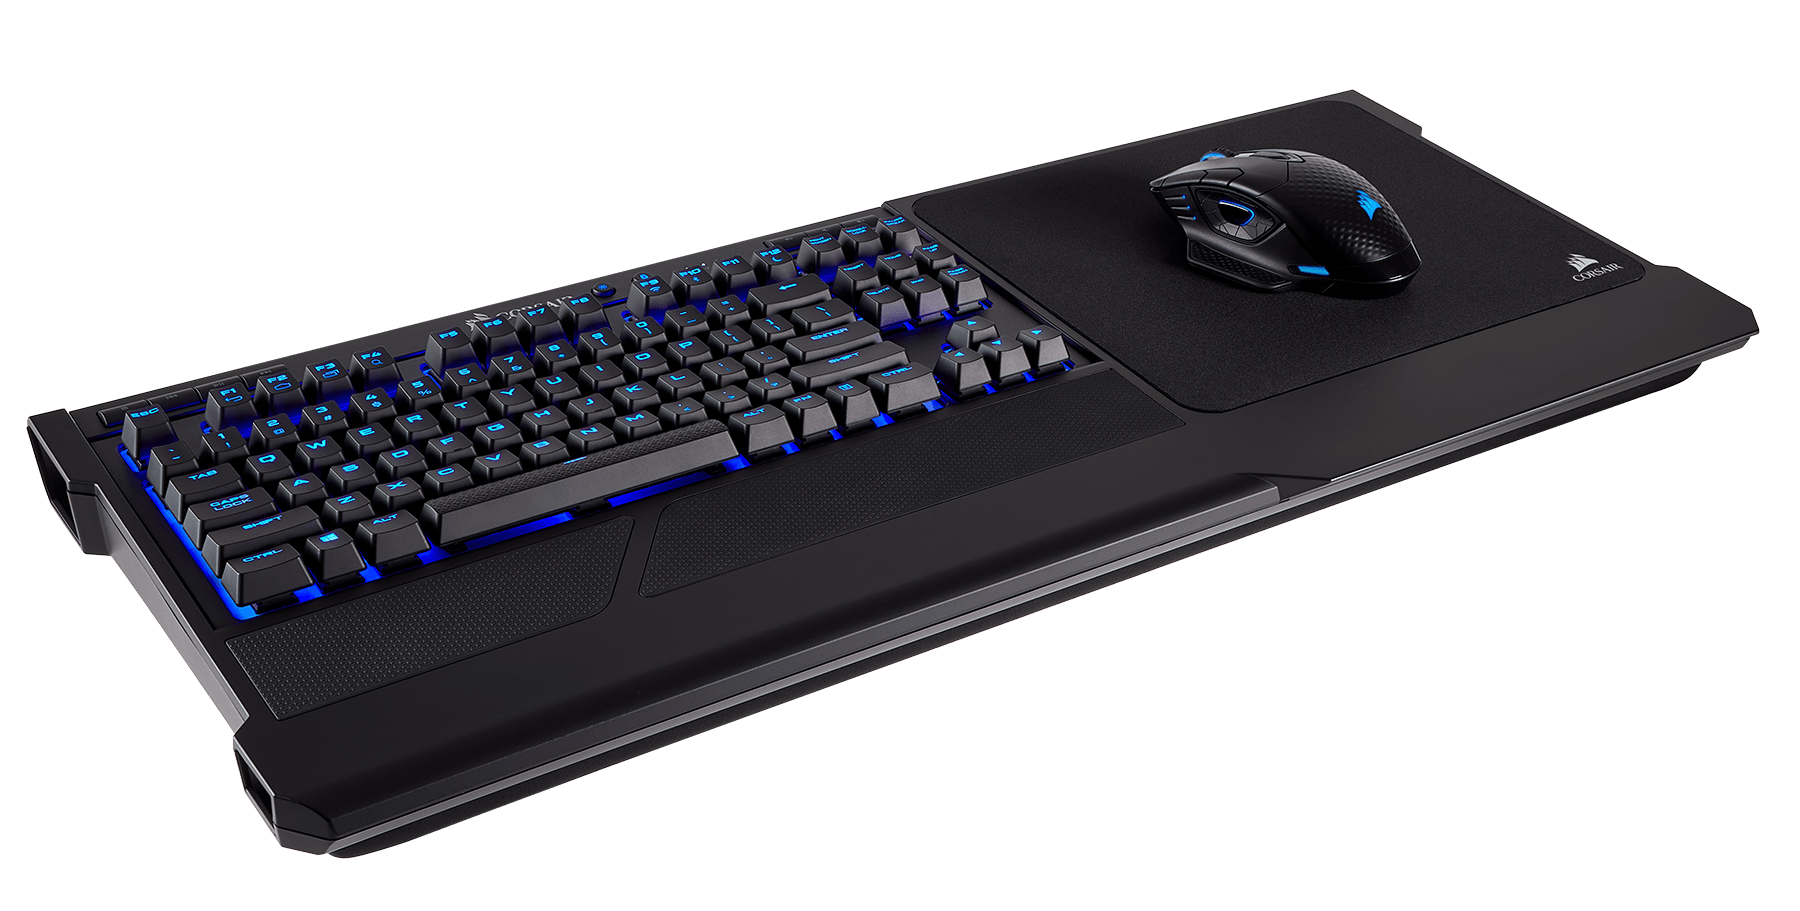 7fcbf836c30 The K63 wireless keyboard is available now for $110 (keyboard only), or  $160 with the keyboard and lapboard.